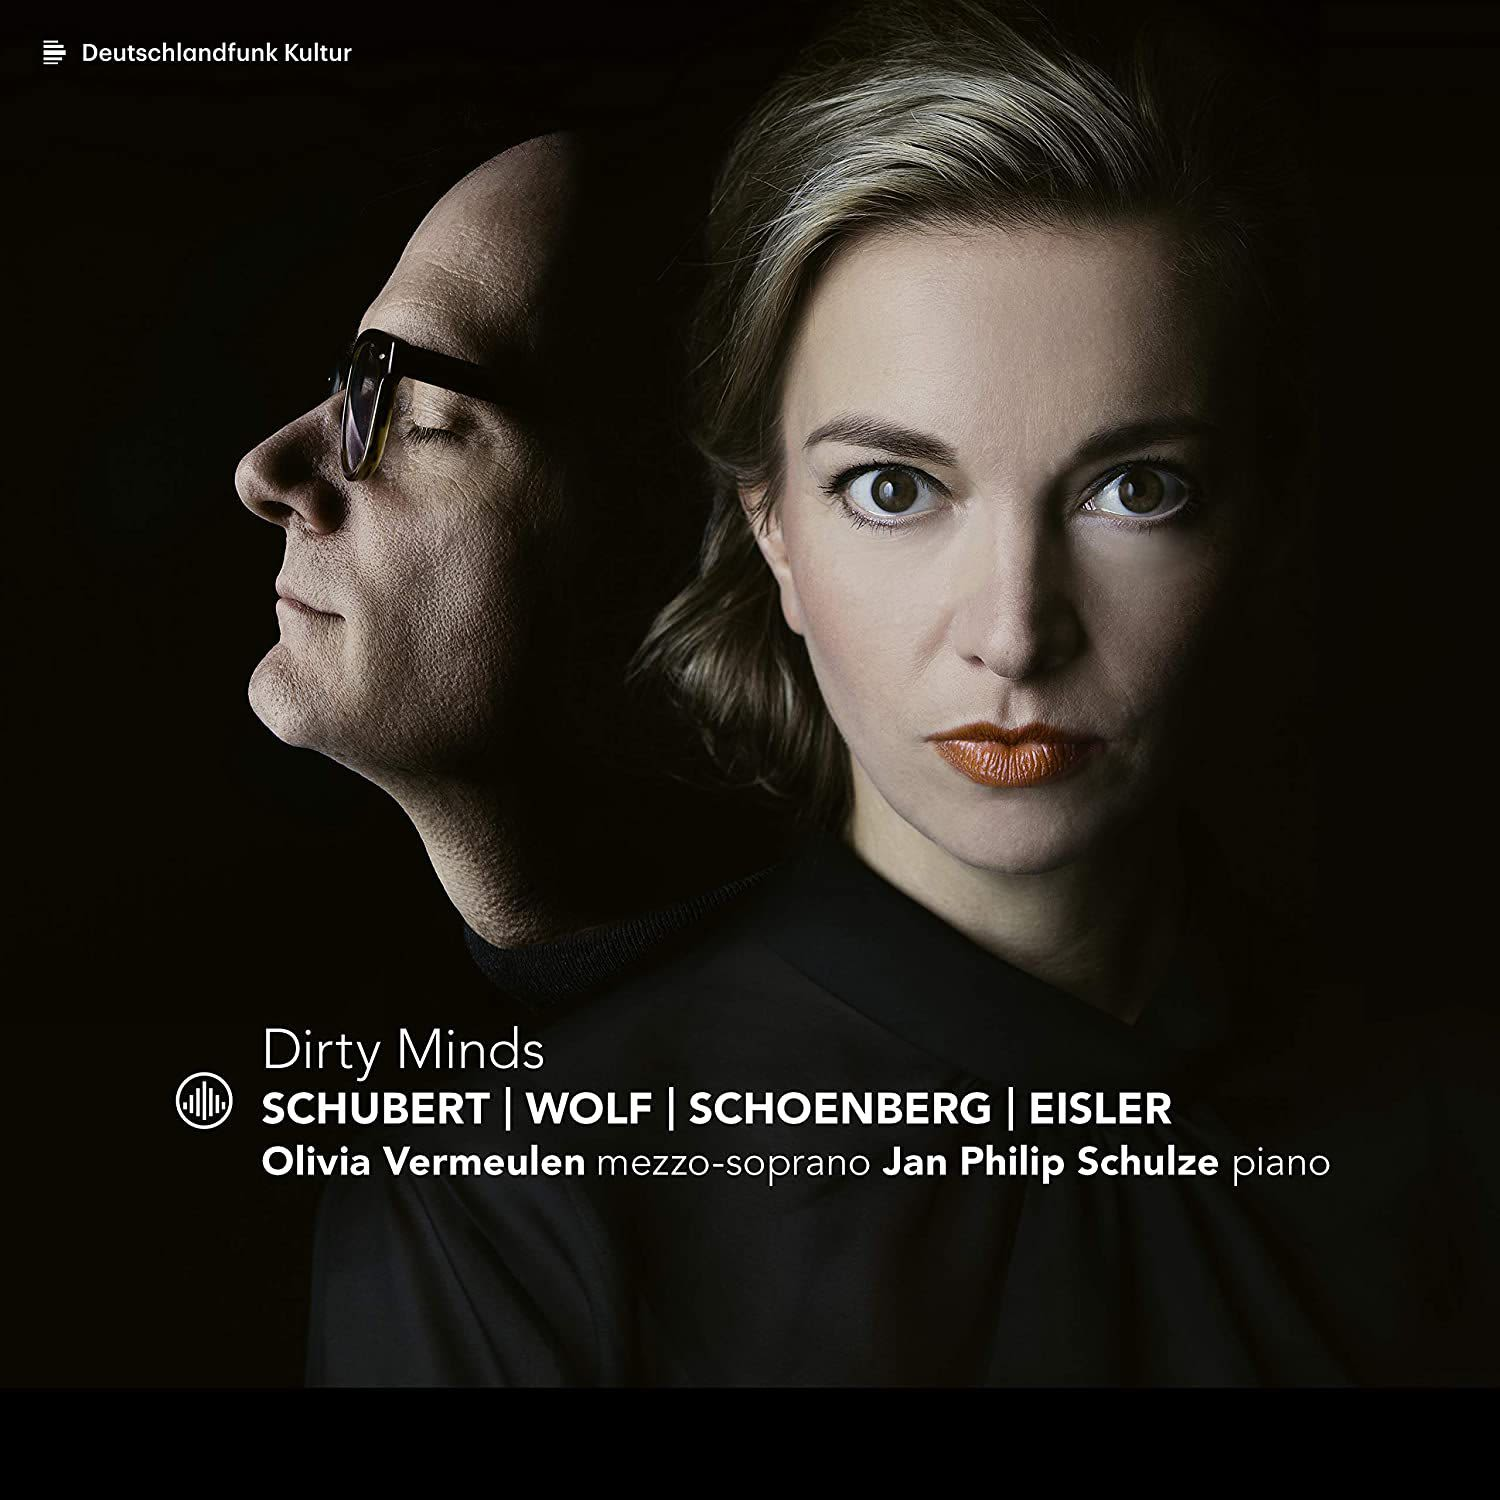 Photo No.1 of Dirty Minds: Schubert, Wolf, Schoenberg, Eisler